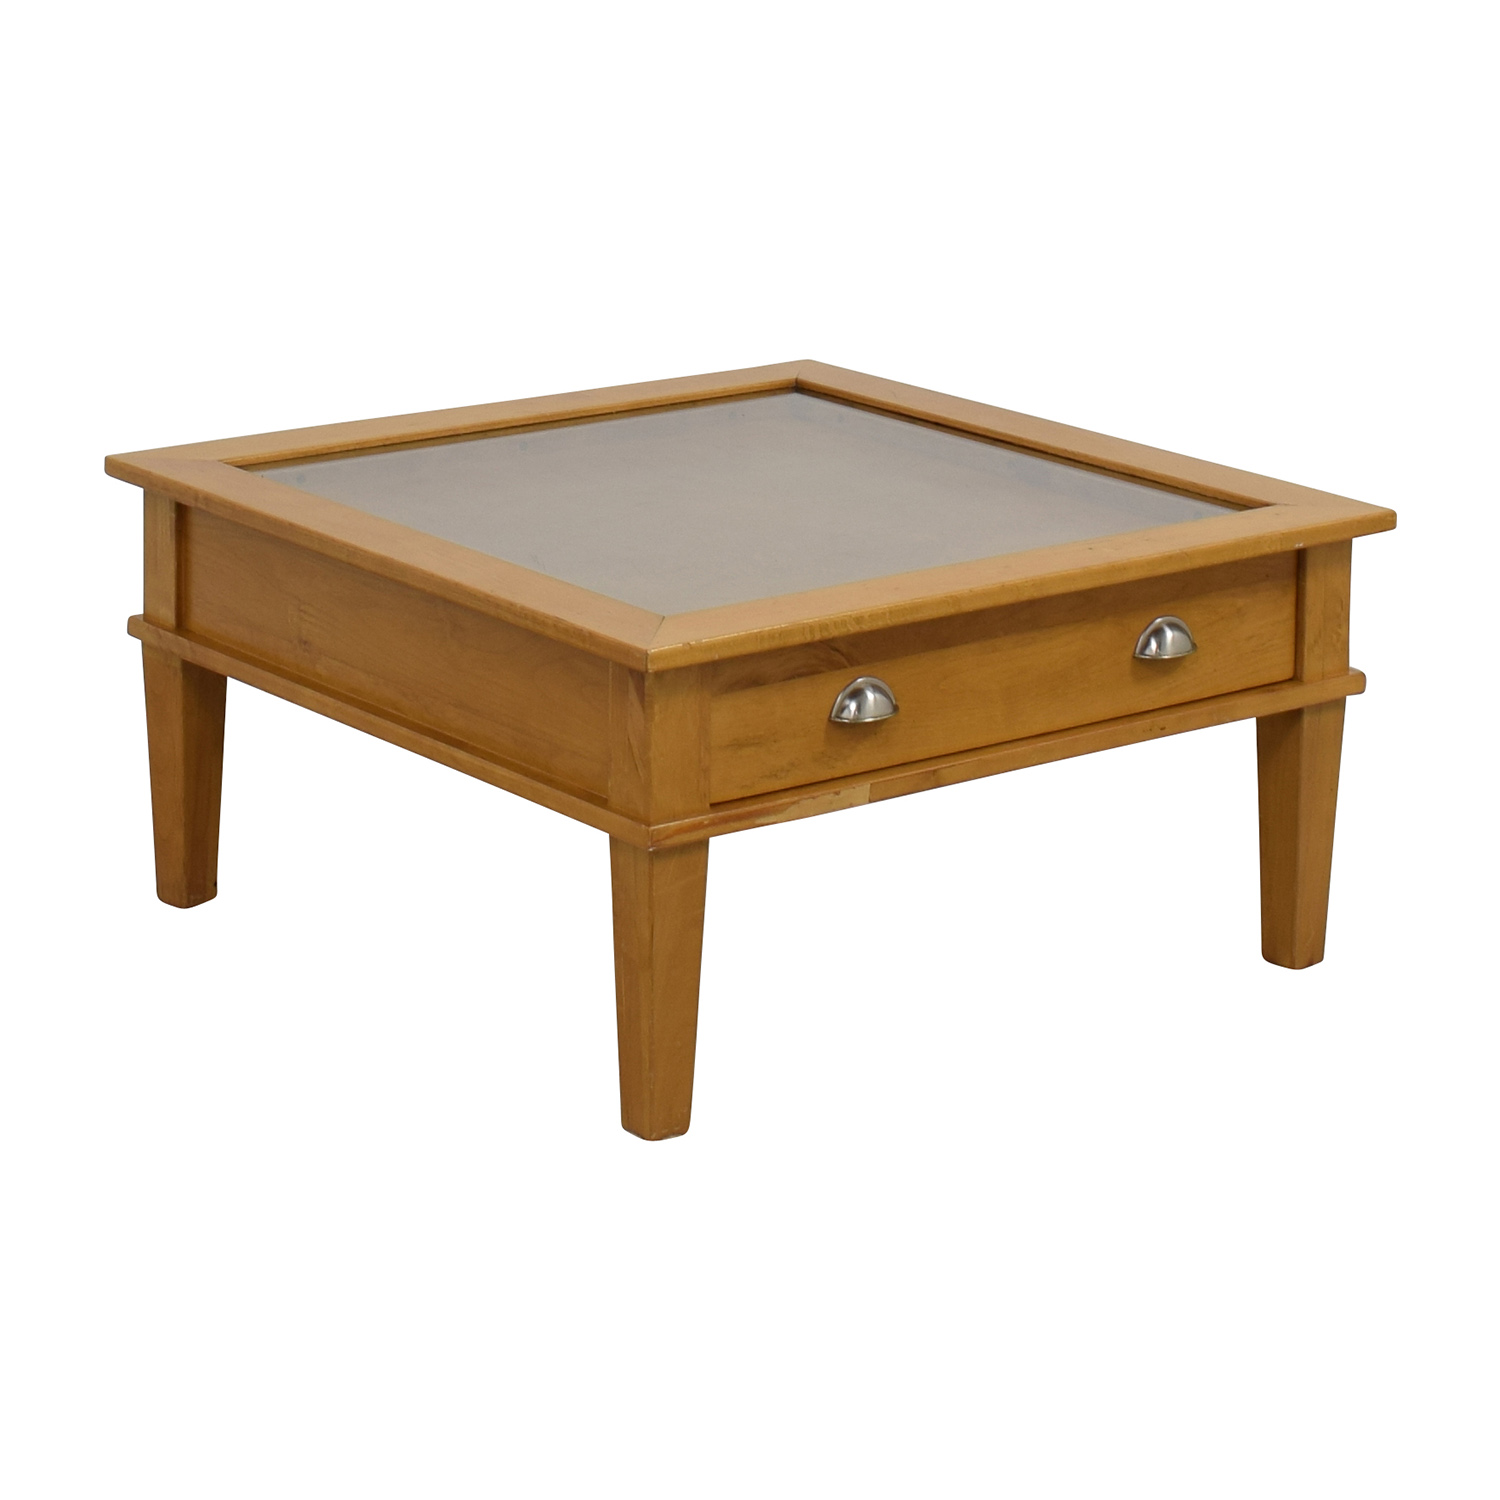 80 off wooden shadow box square coffee table tables Wood square coffee tables